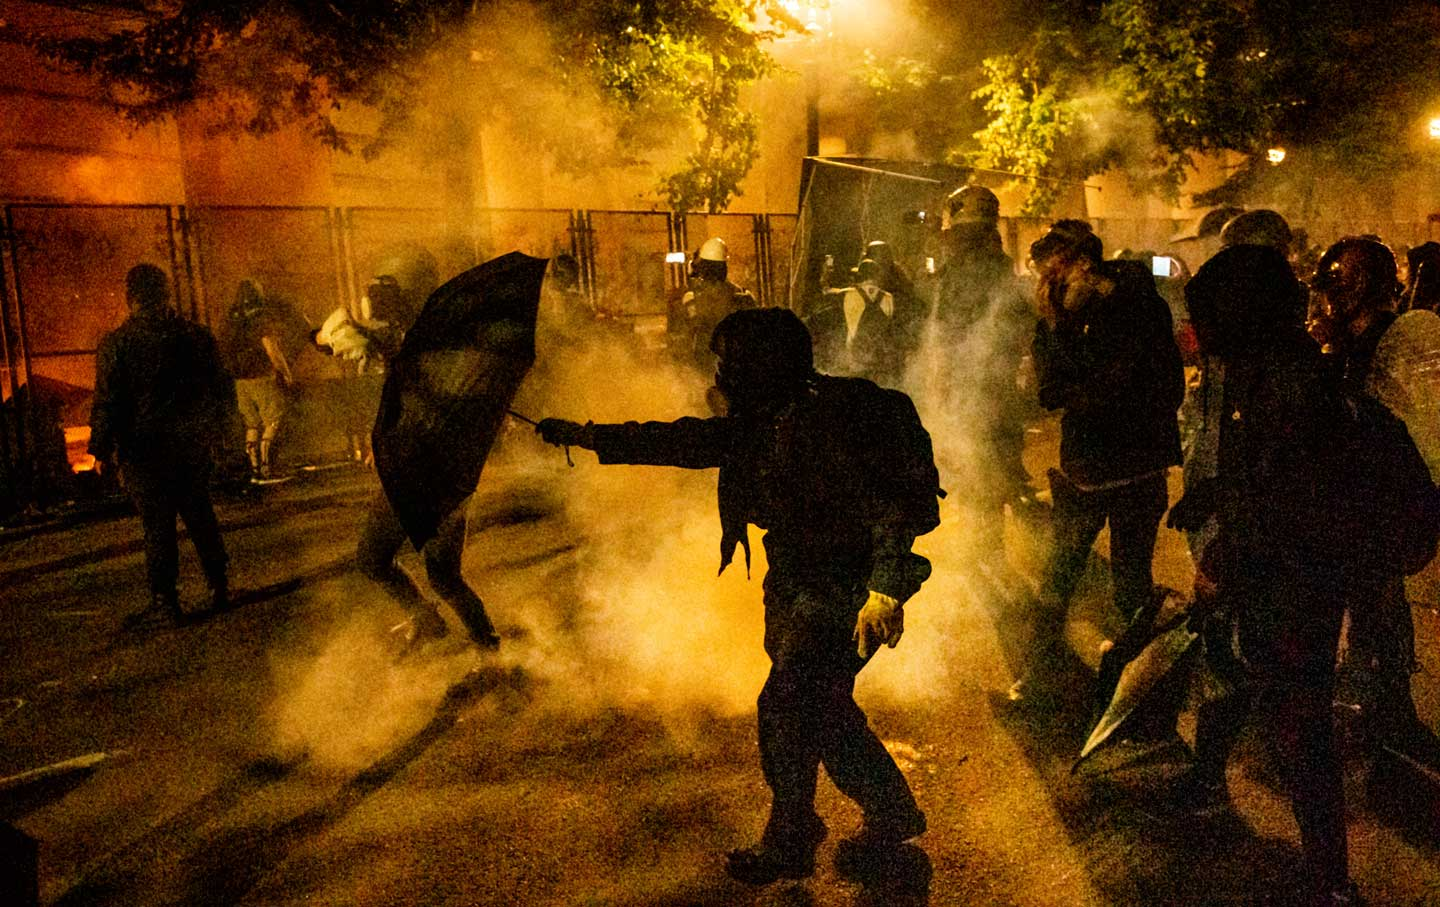 portland-protesters-chemical-agents-ap-img